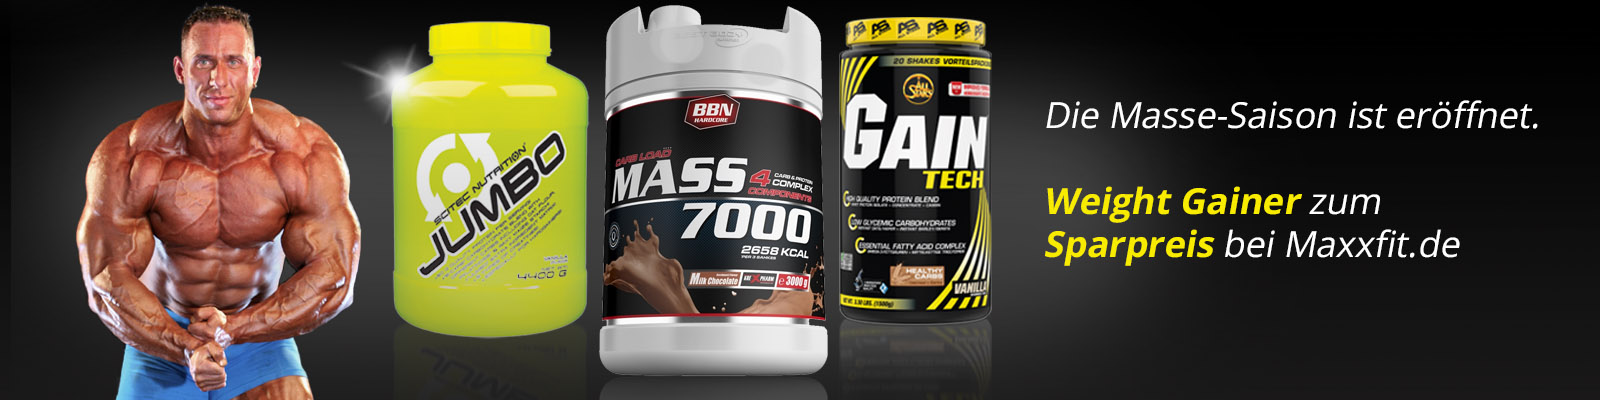 Weight Gainer günstig bei Maxxfit.de